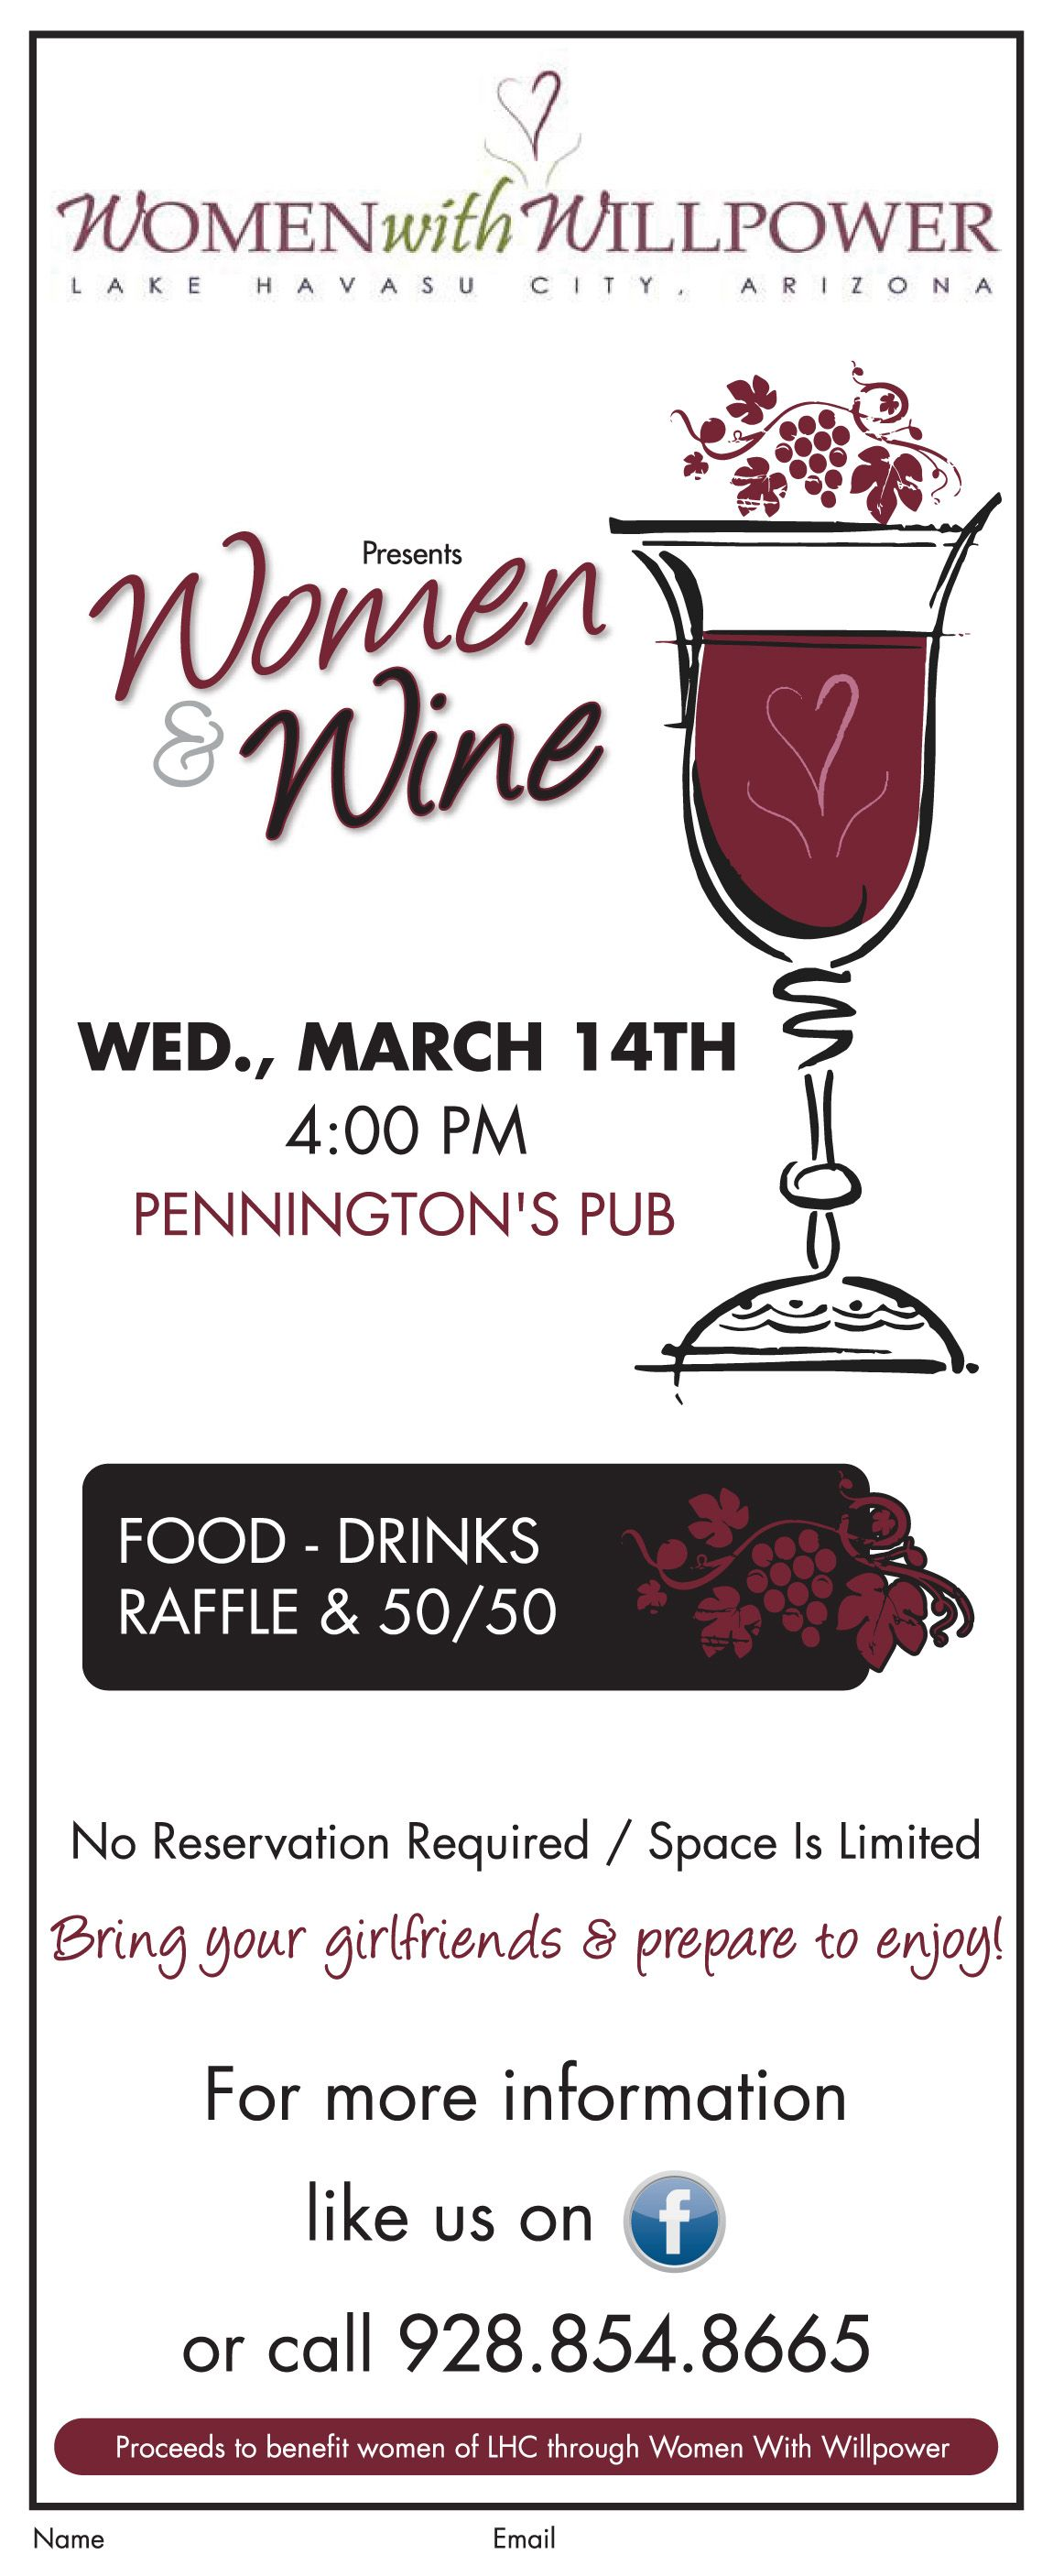 Don T Miss Womenwithwillpower S Women Wine Event On Wednesday March 14th At Penningtonspub The Event Includes Food Drinks Ra Pub Food Drinks Woman Wine